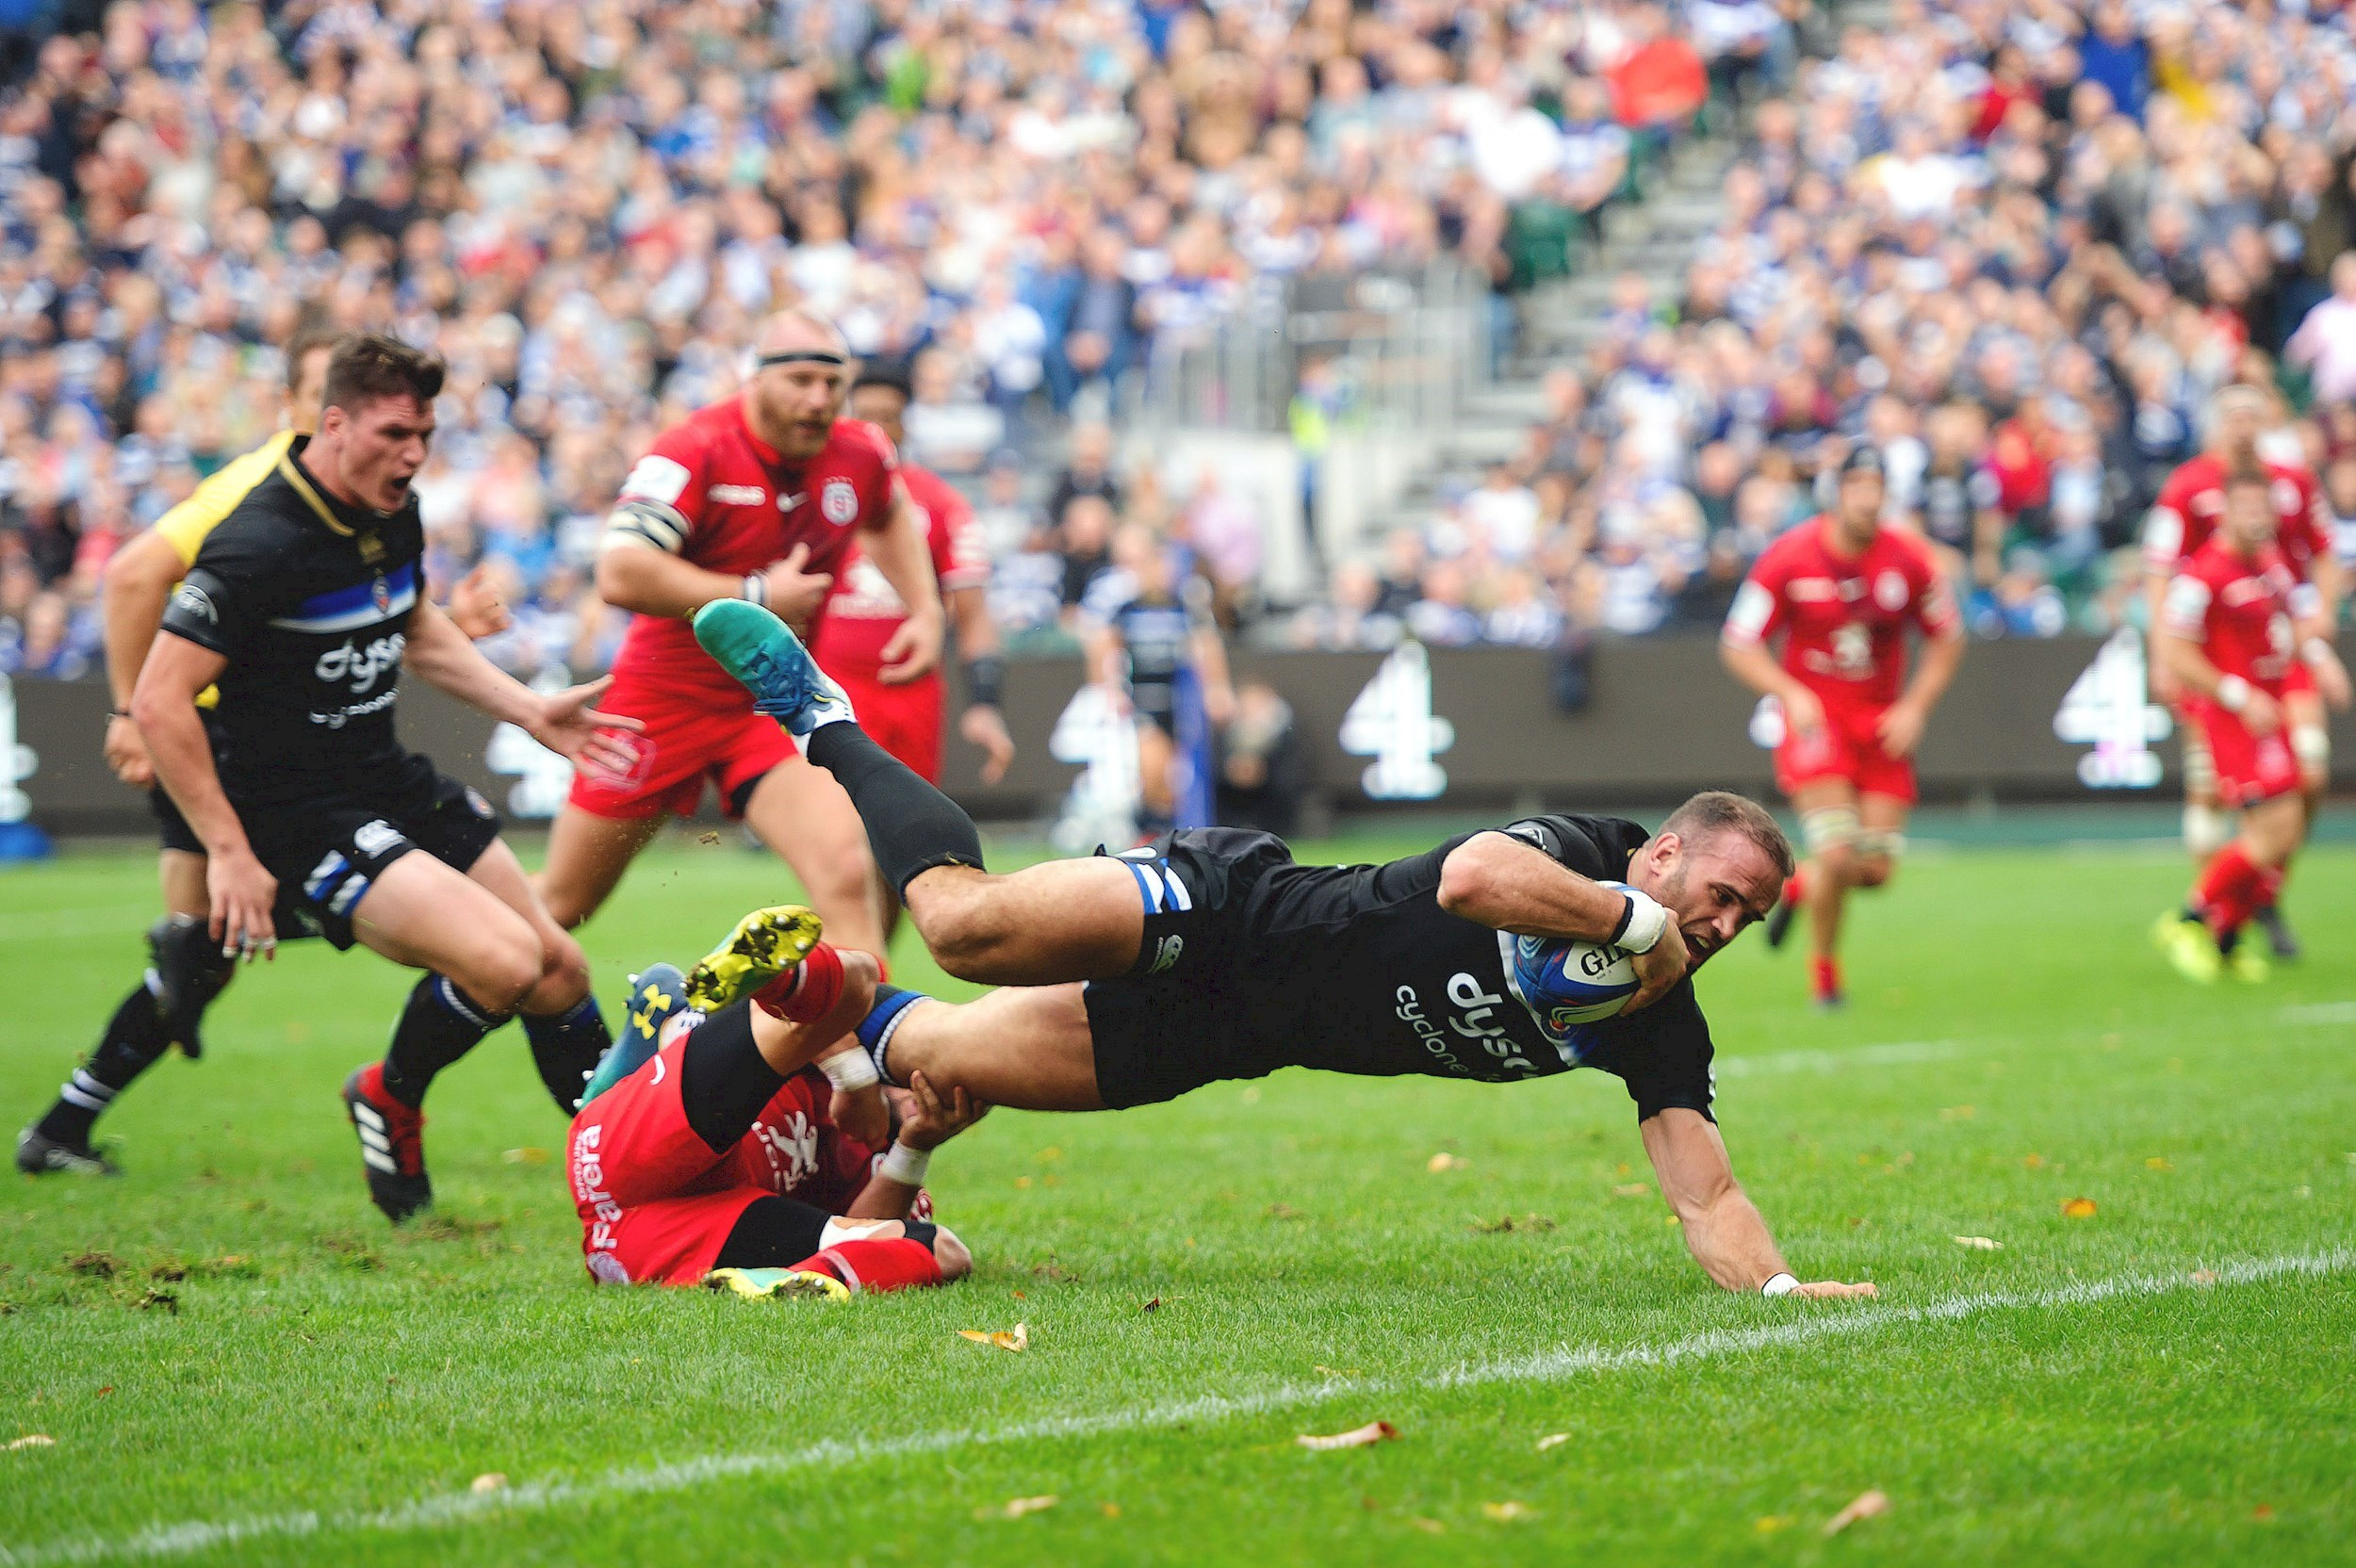 Toulouse grind out narrow victory over Bath Rugby at the Rec